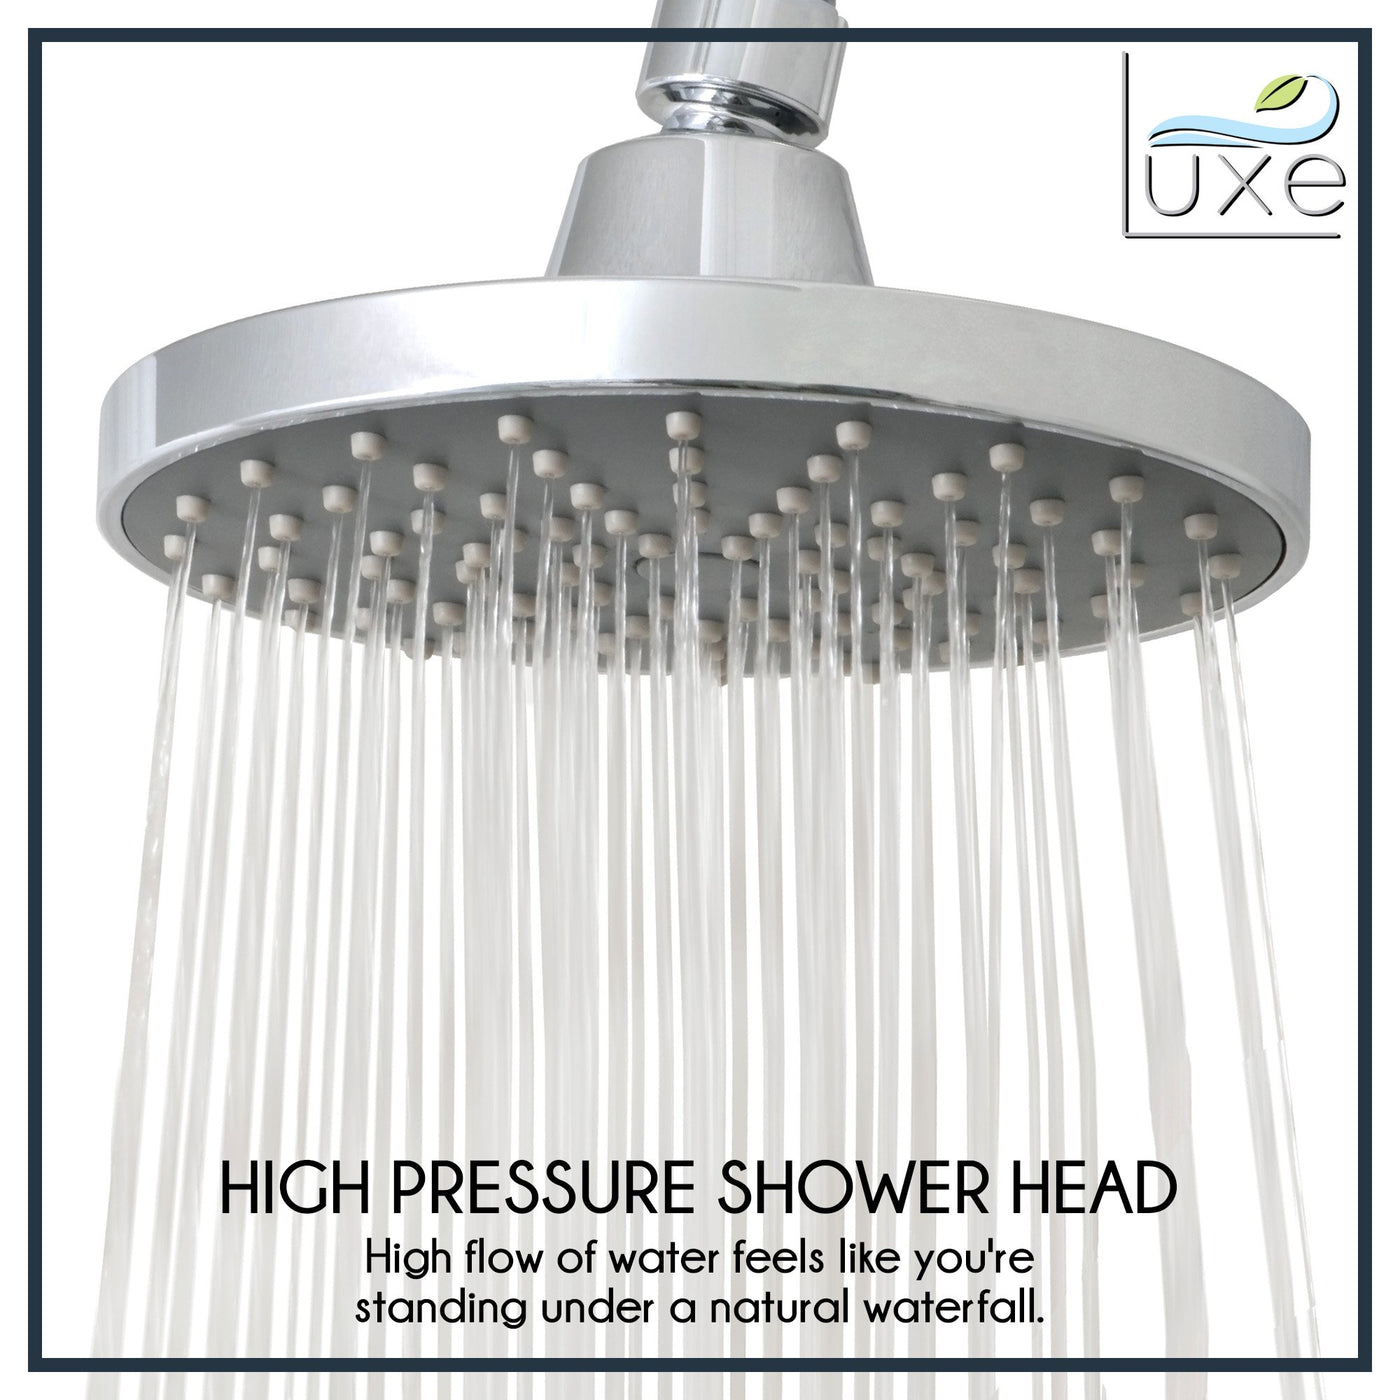 RainLuxe 6 Inch Rainshower Shower Head High Flow Chrome Finish ...